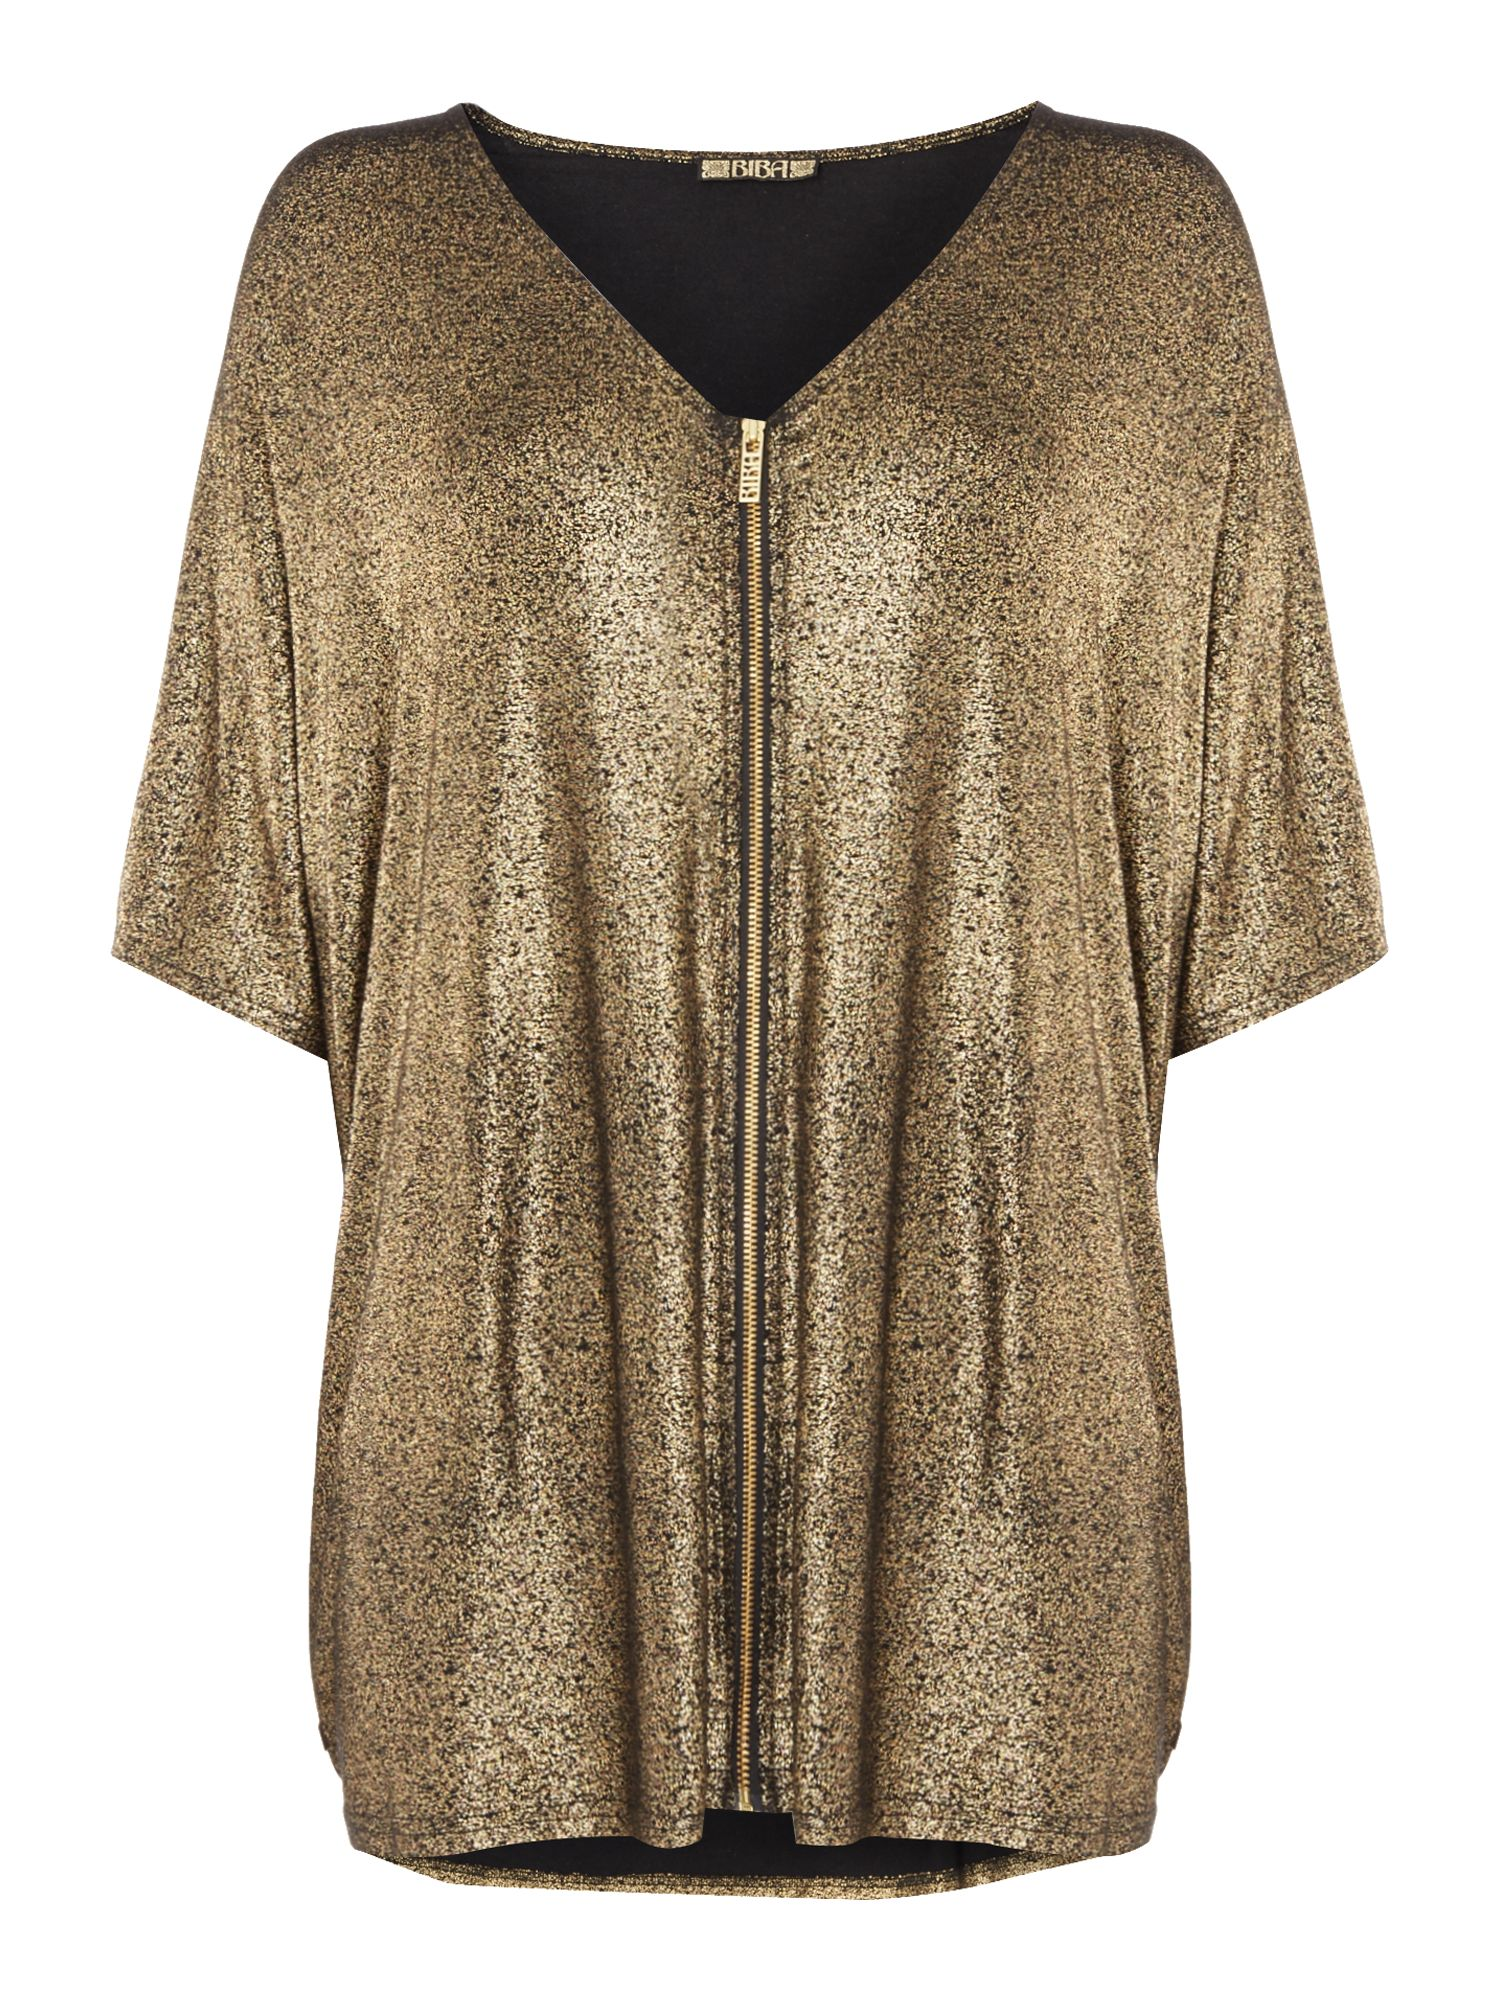 Biba Biba Luxe casualwear metallic zip jersey top, Gold